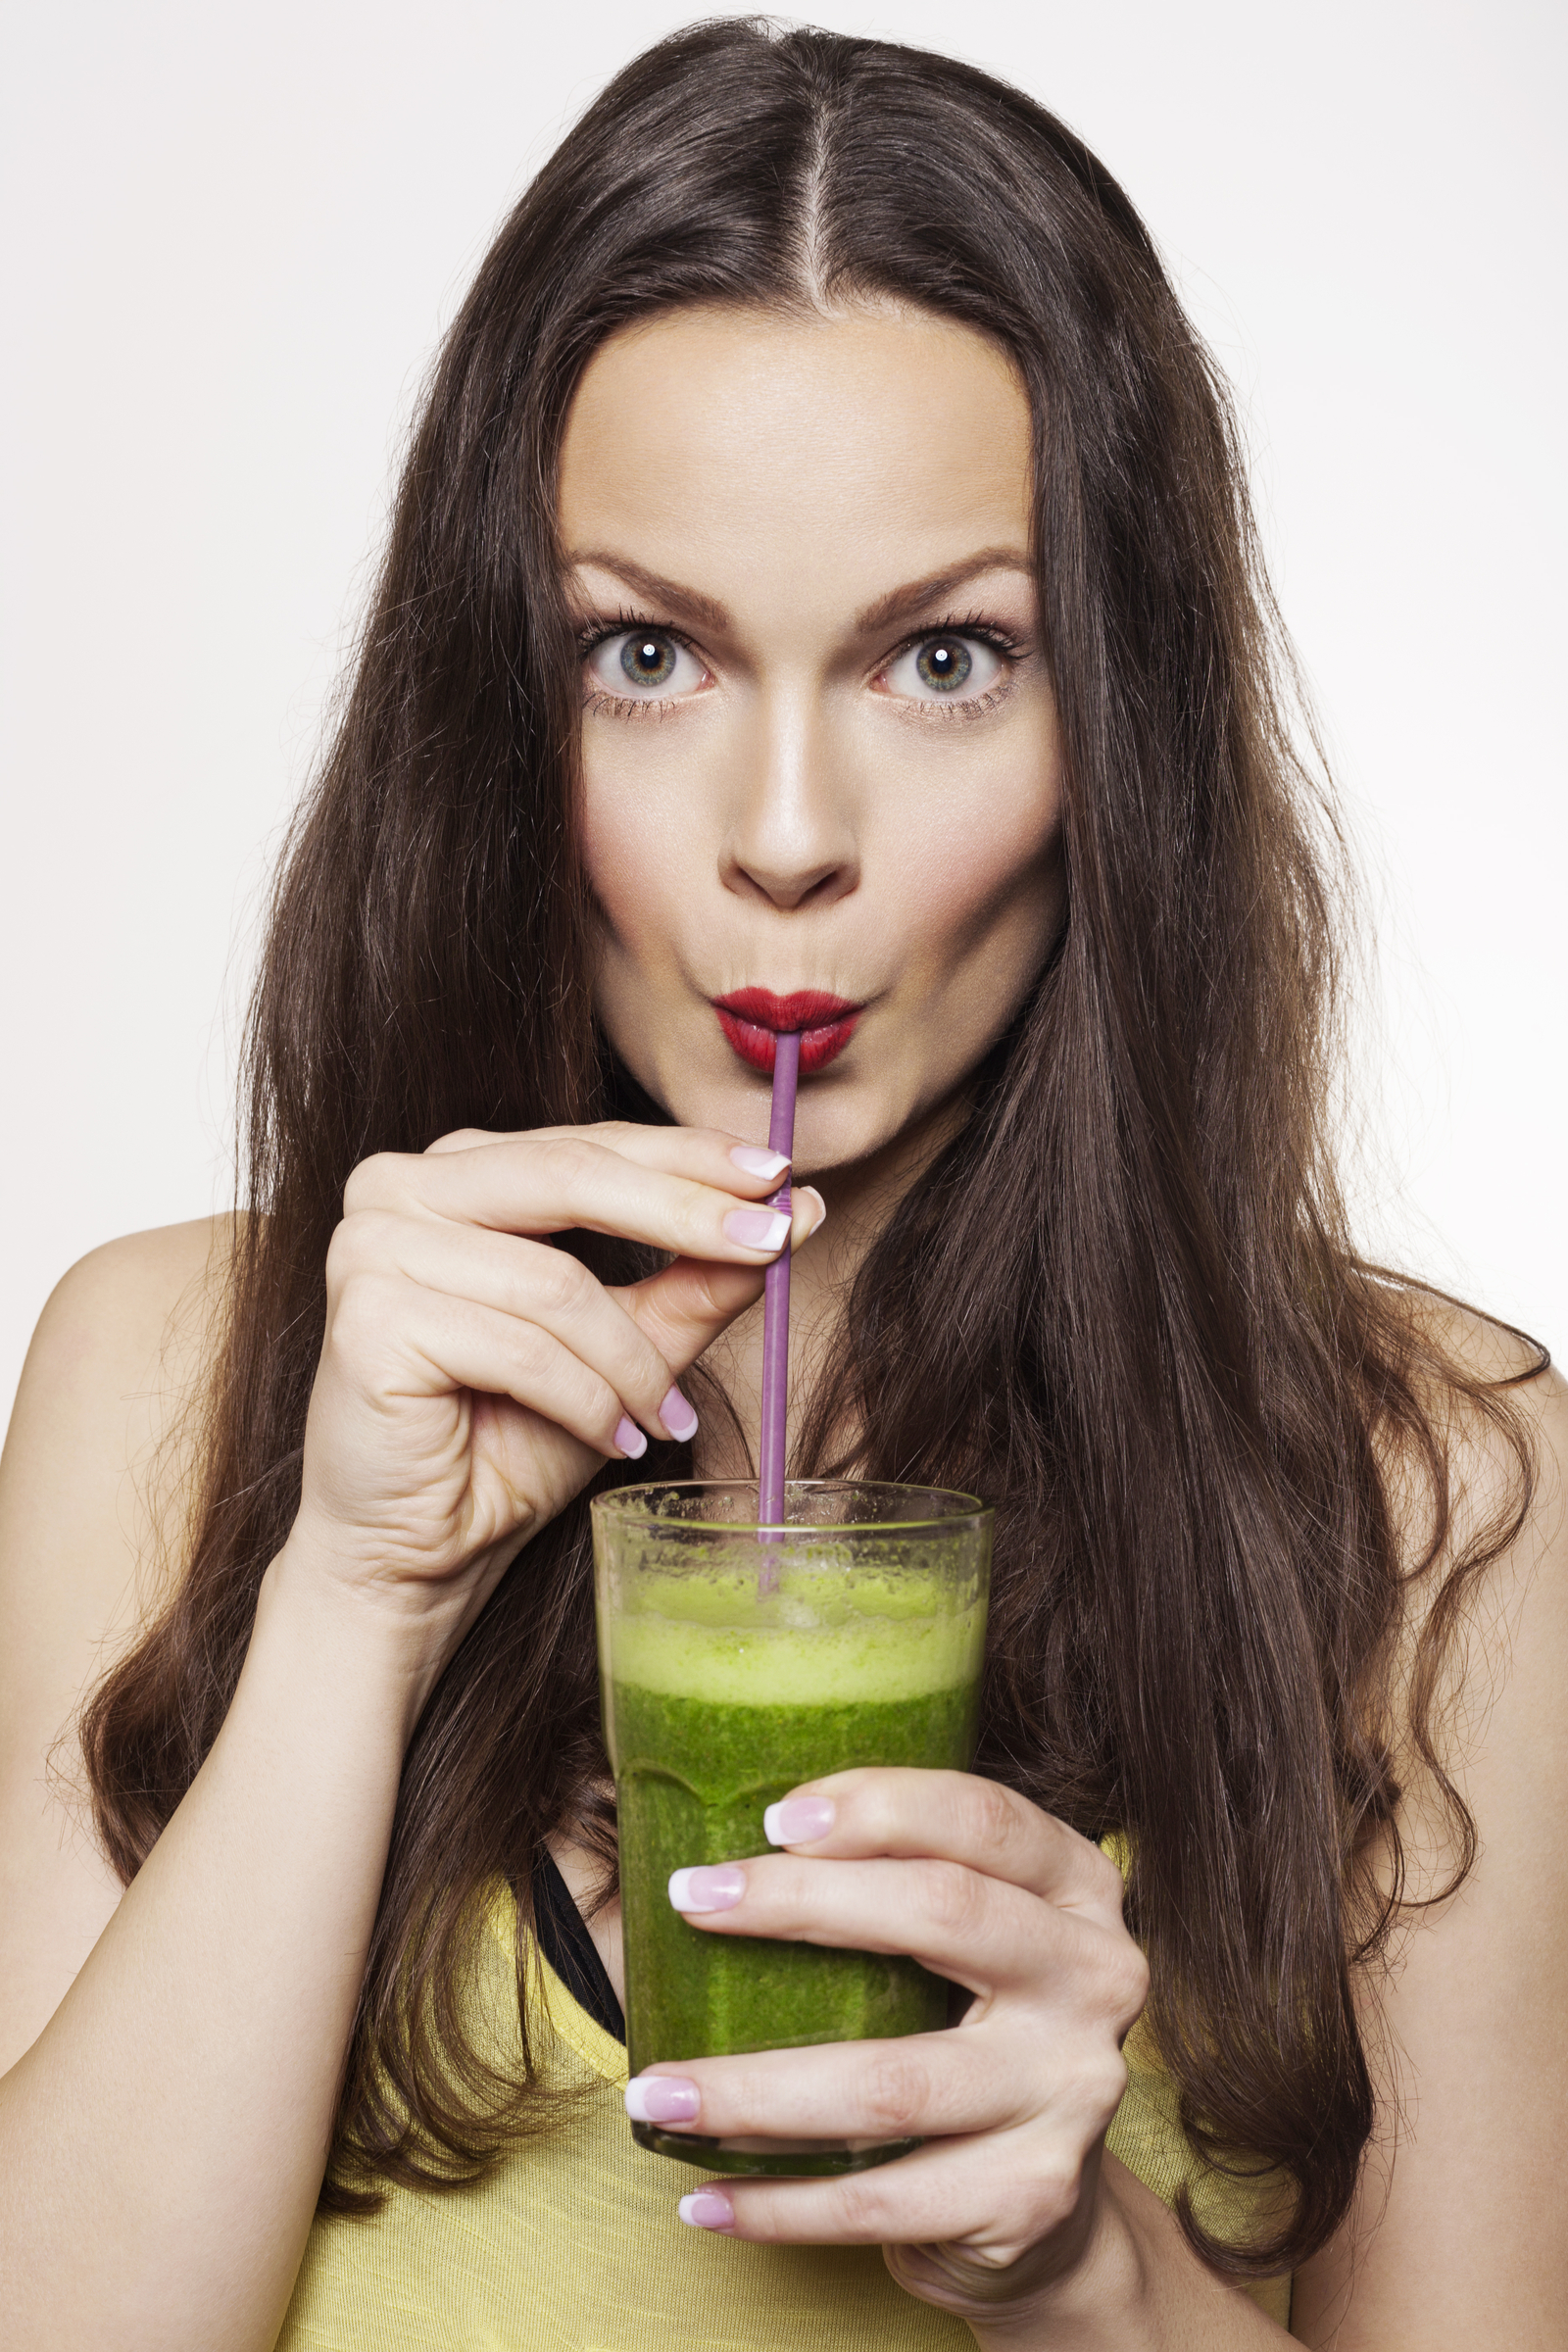 Woman Drinking Juice | 5 Easy and Tasty Juicing Recipes For Beginners